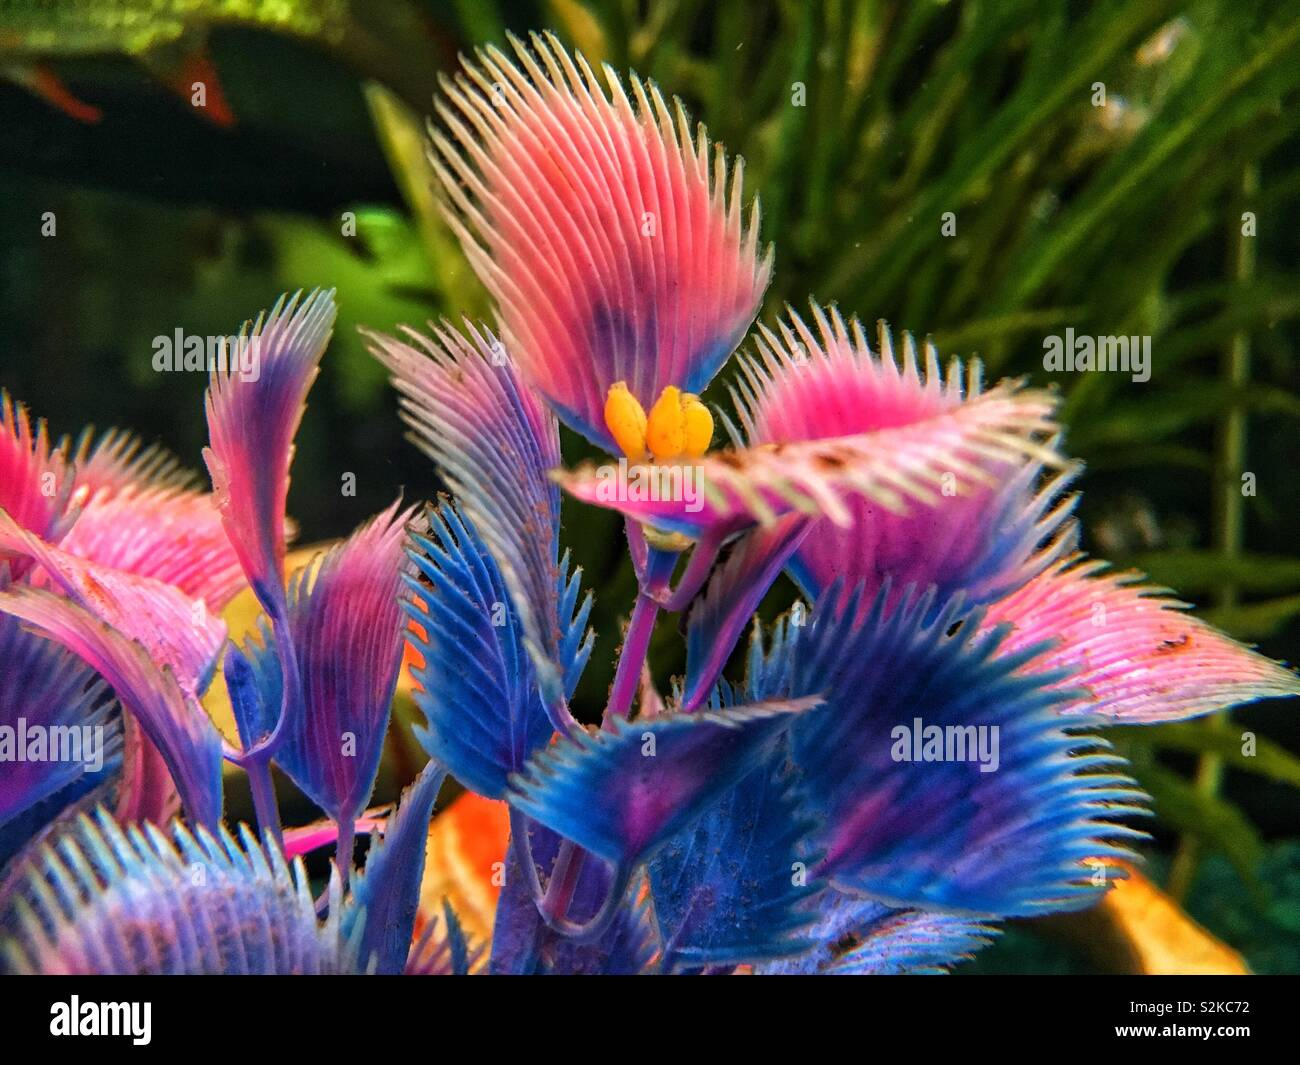 Unusual bright pink plastic plant foliage underwater in a fish tank. - Stock Image